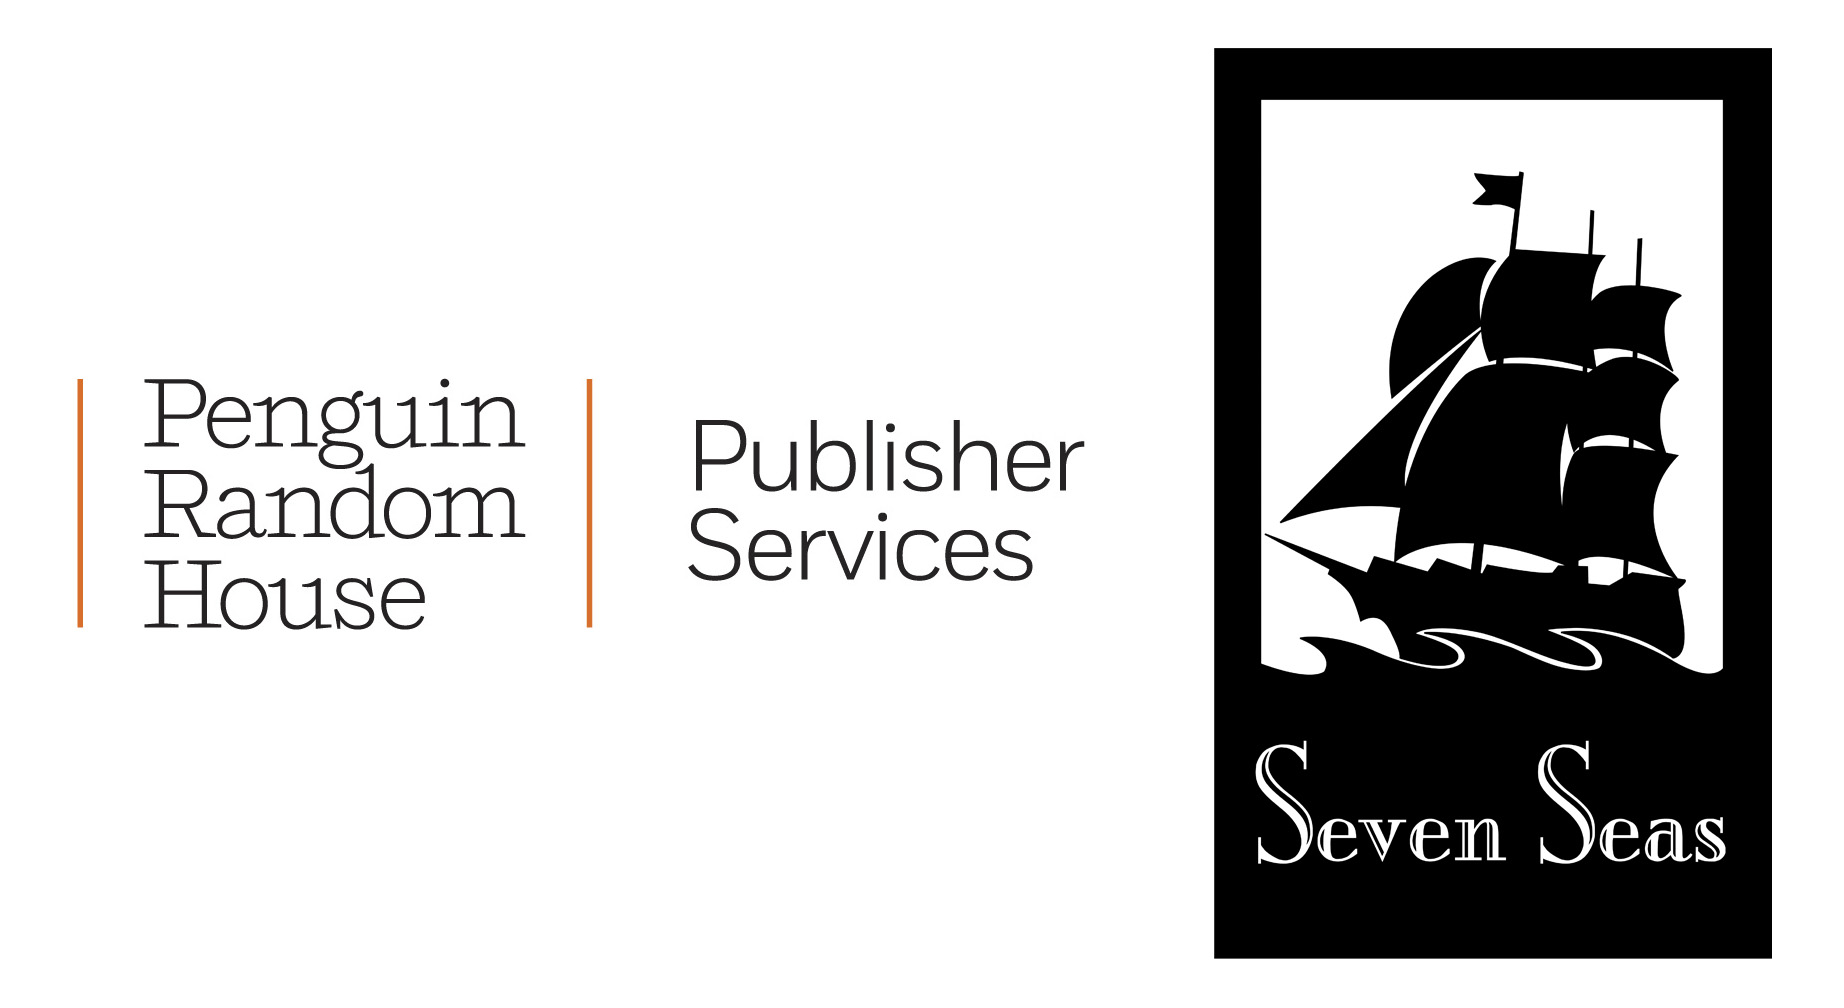 Seven Seas x Penguin Random House